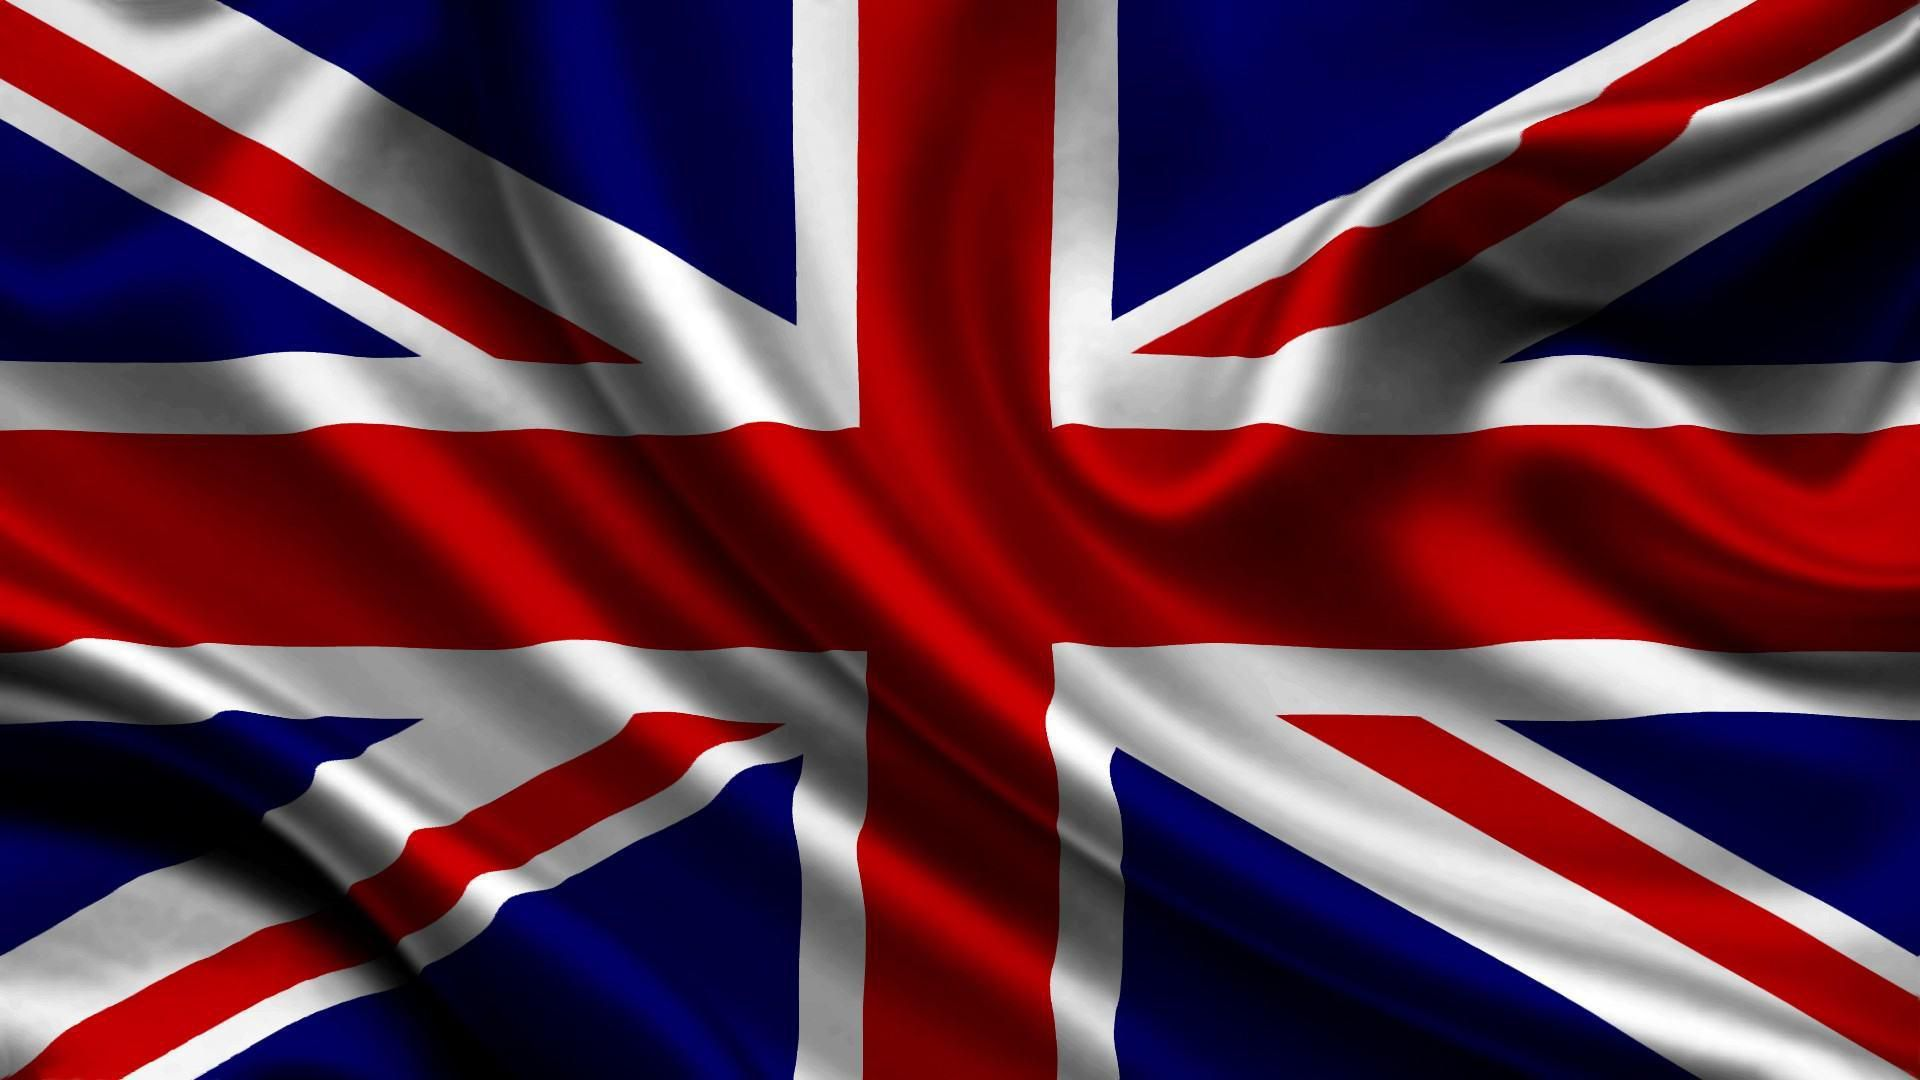 British Flag Photos